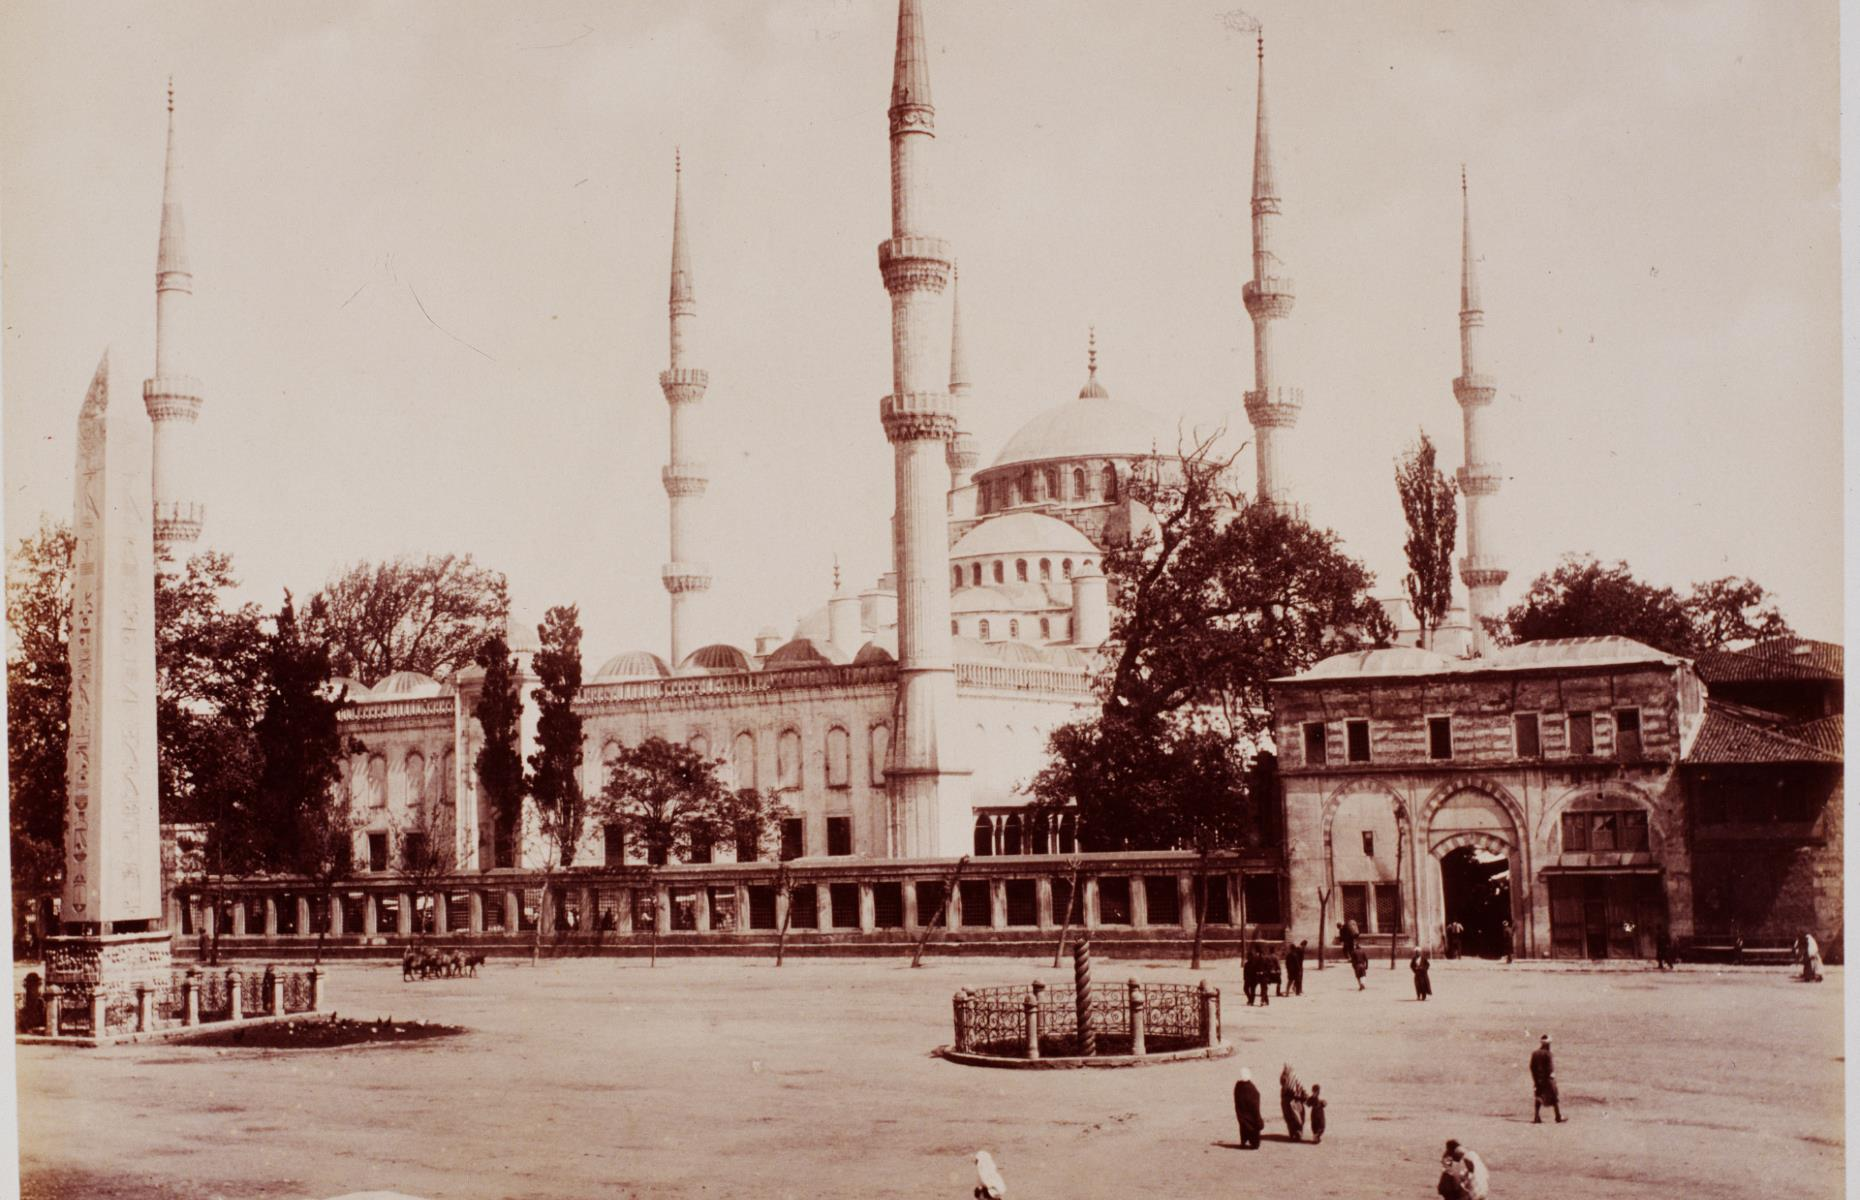 Slide 14 of 51: The Blue Mosque in Istanbul was built between 1609 and 1616, as a way for Sultan Ahmed I to reassert the Ottoman Empire's power following the Peace of Zsitvatorok (1606) and losses in wars with Persia. With six minarets, five main domes and eight smaller domes, it's one of the most impressive surviving mosques from the Classical period. Today it usually attracts around five million people each year, although it hasn't always been so popular – in this photograph from 1899, the outside of the mosque looks eerily quiet.